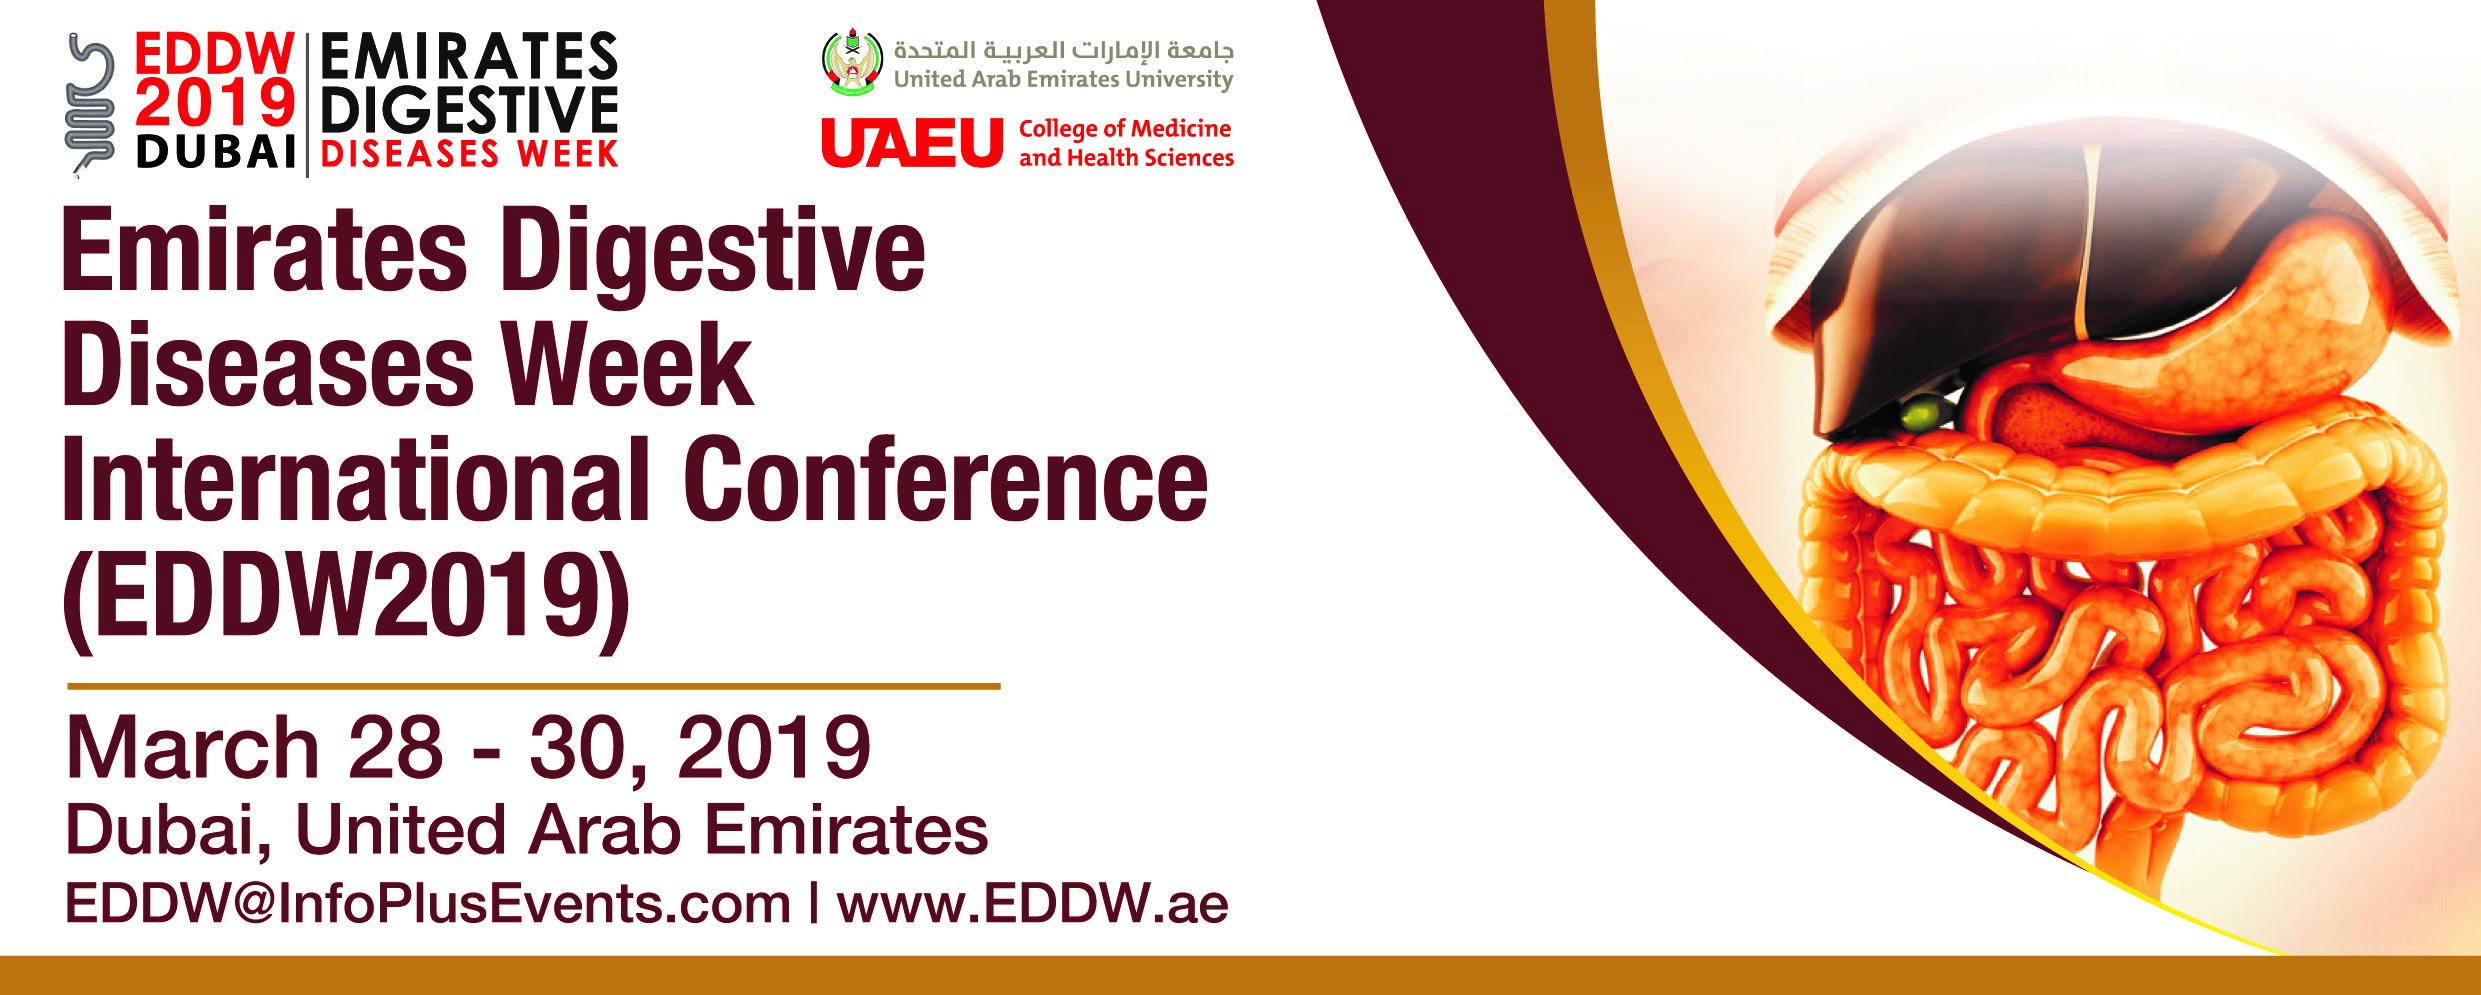 Emirates Digestive Diseases Week International Conference, 28th -30th March, 2019